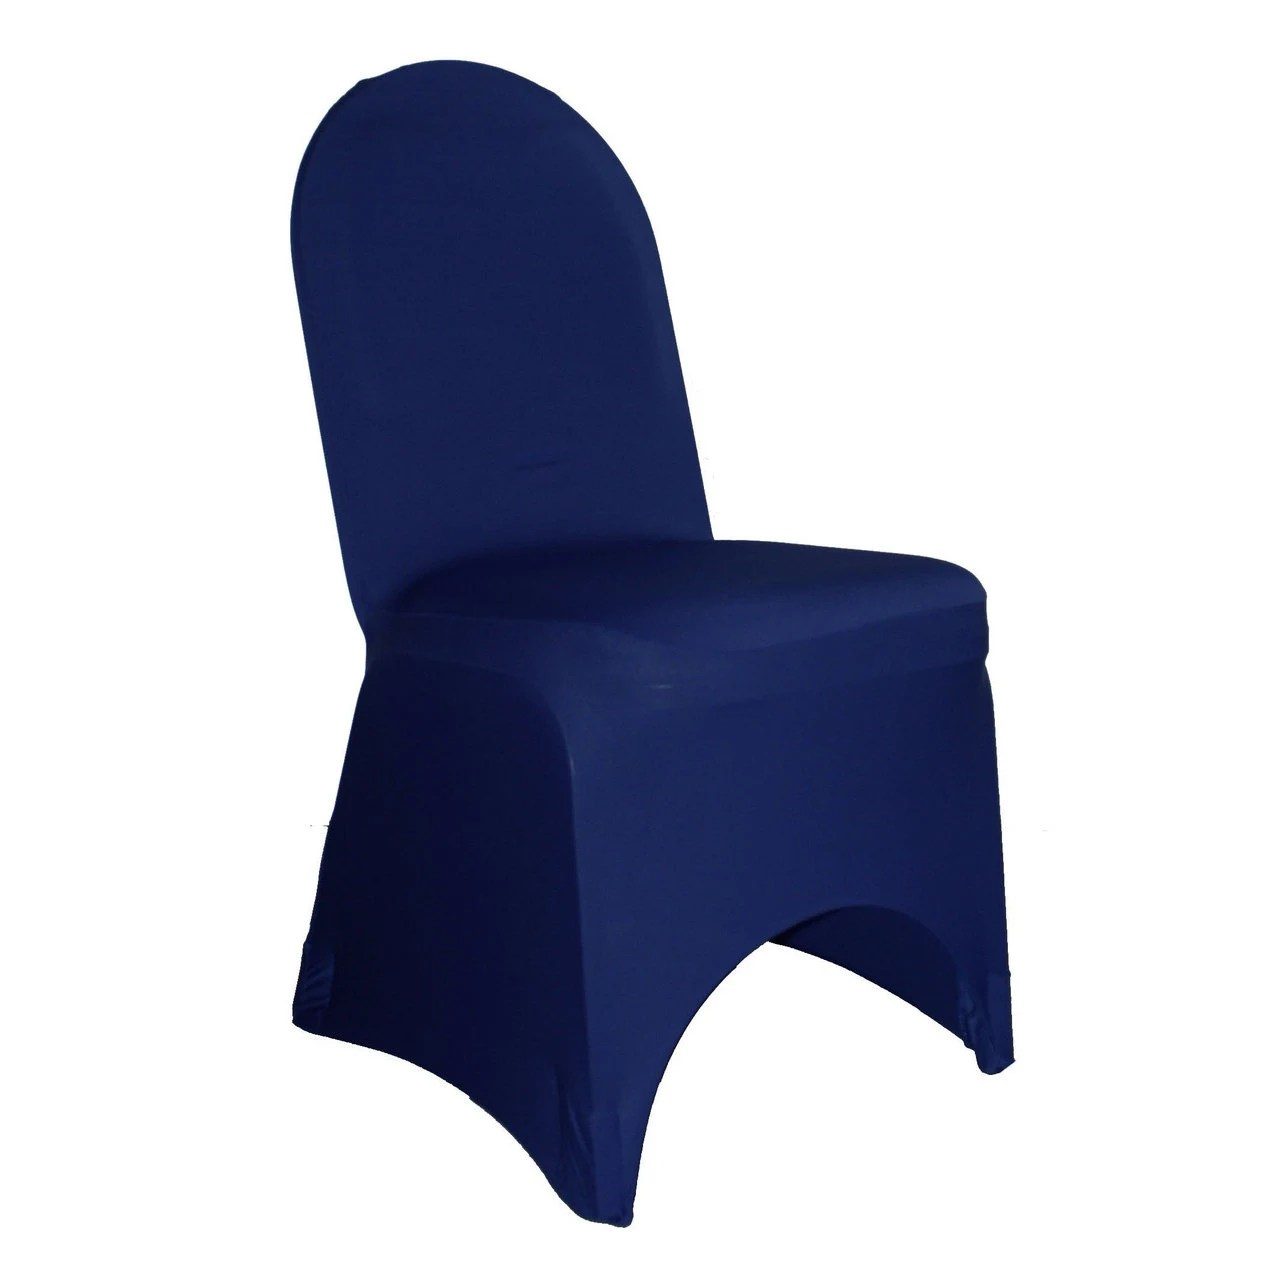 Cheap Spandex Chair Covers Spandex Banquet Chair Cover Navy Blue Wholesale Chair Covers